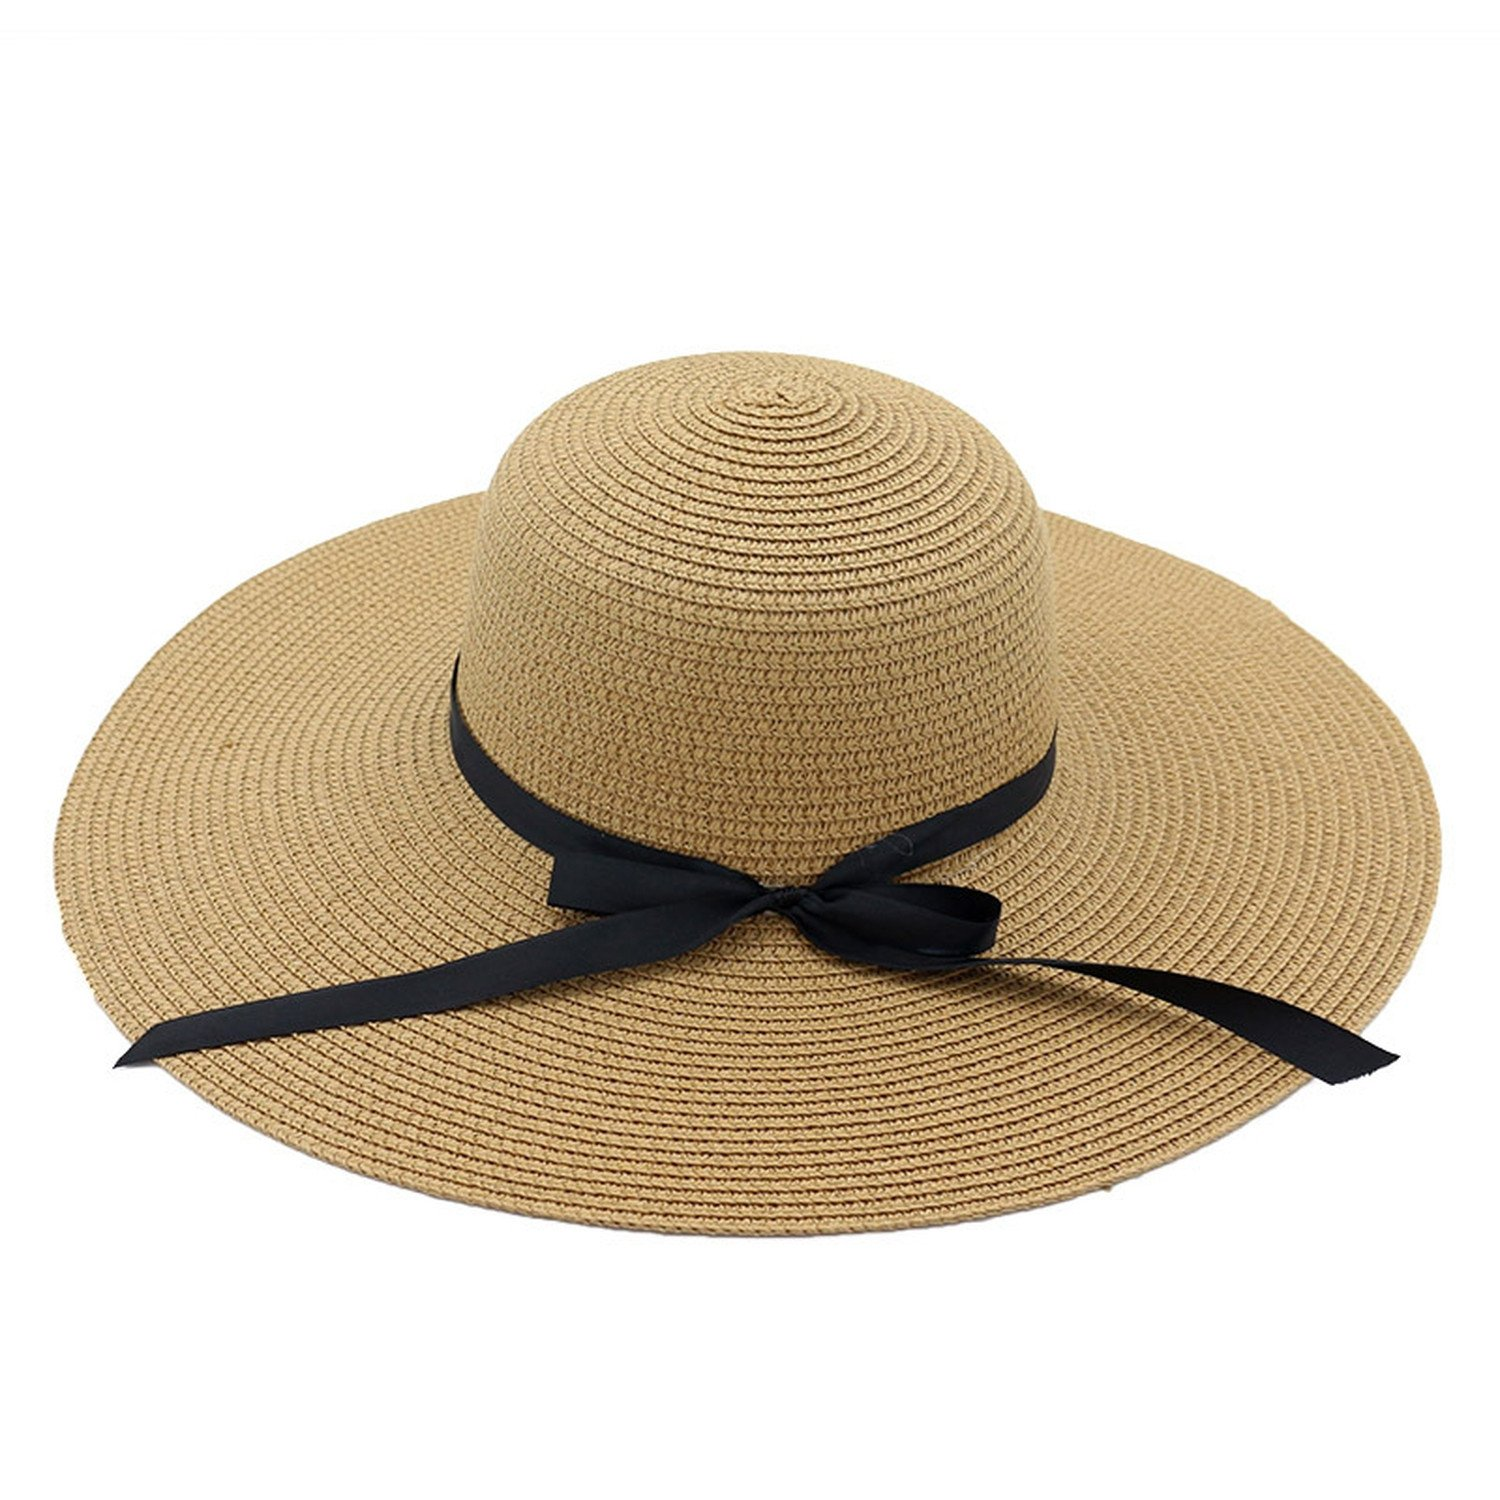 Spring and summer new hat female straw hat seaside holiday beach sun hat big hat bow bow sun hat,Khaki,adjustable by Spring Moon party-hats (Image #1)